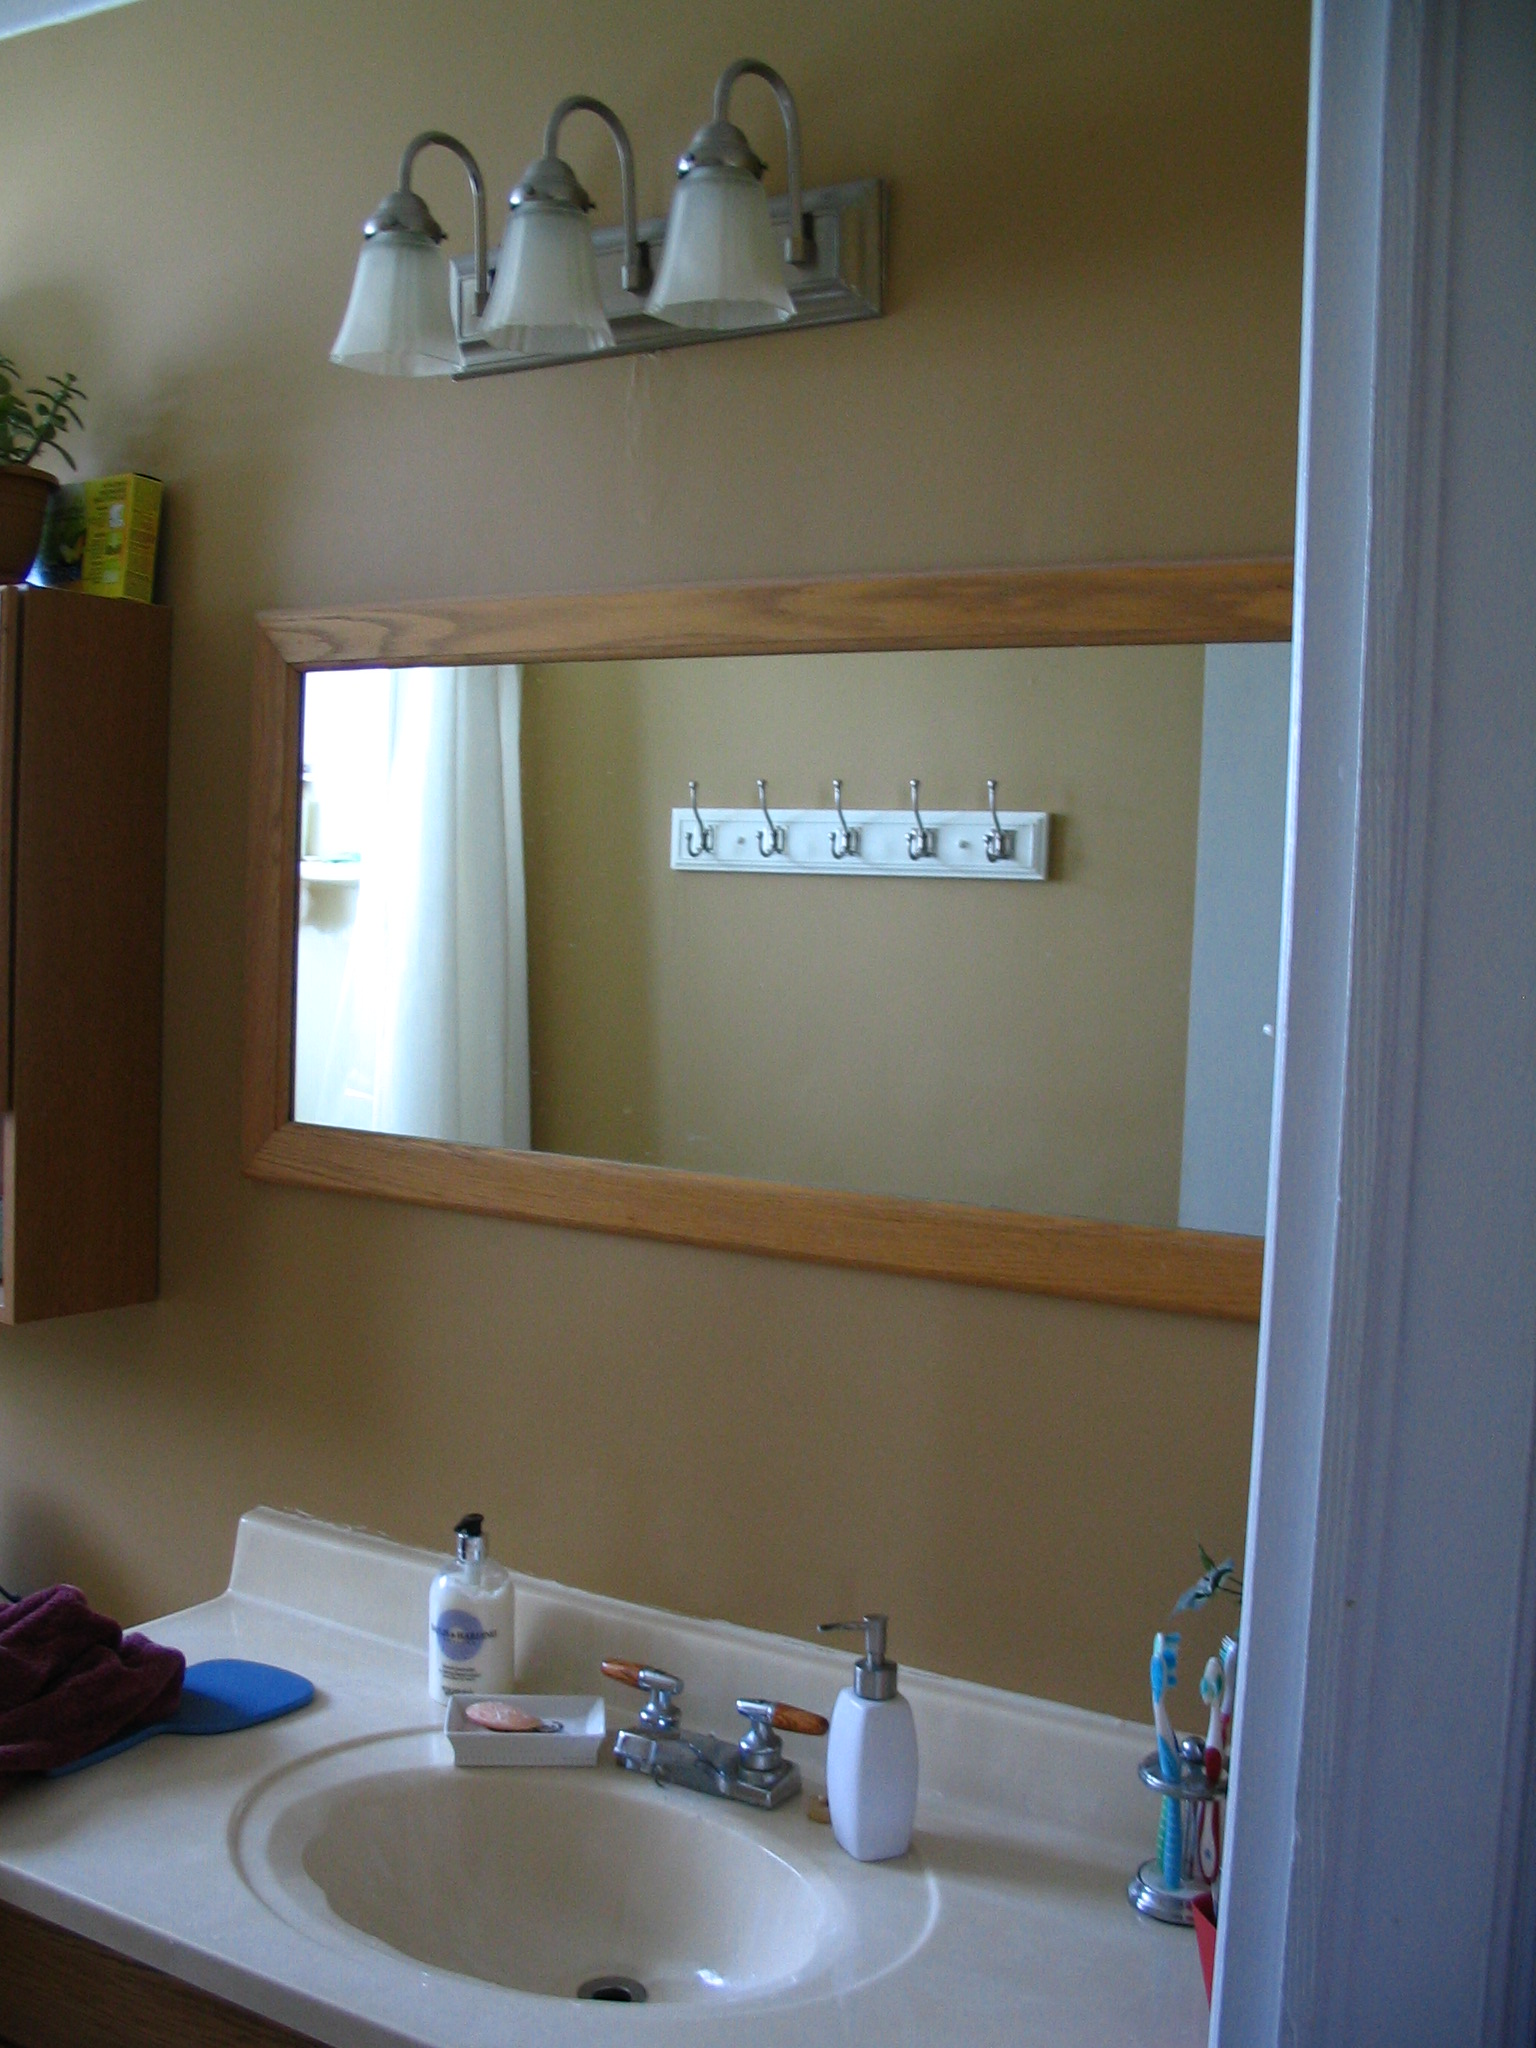 Bathroom light off-center (mirror, sink, design, mirrors) - Home ...